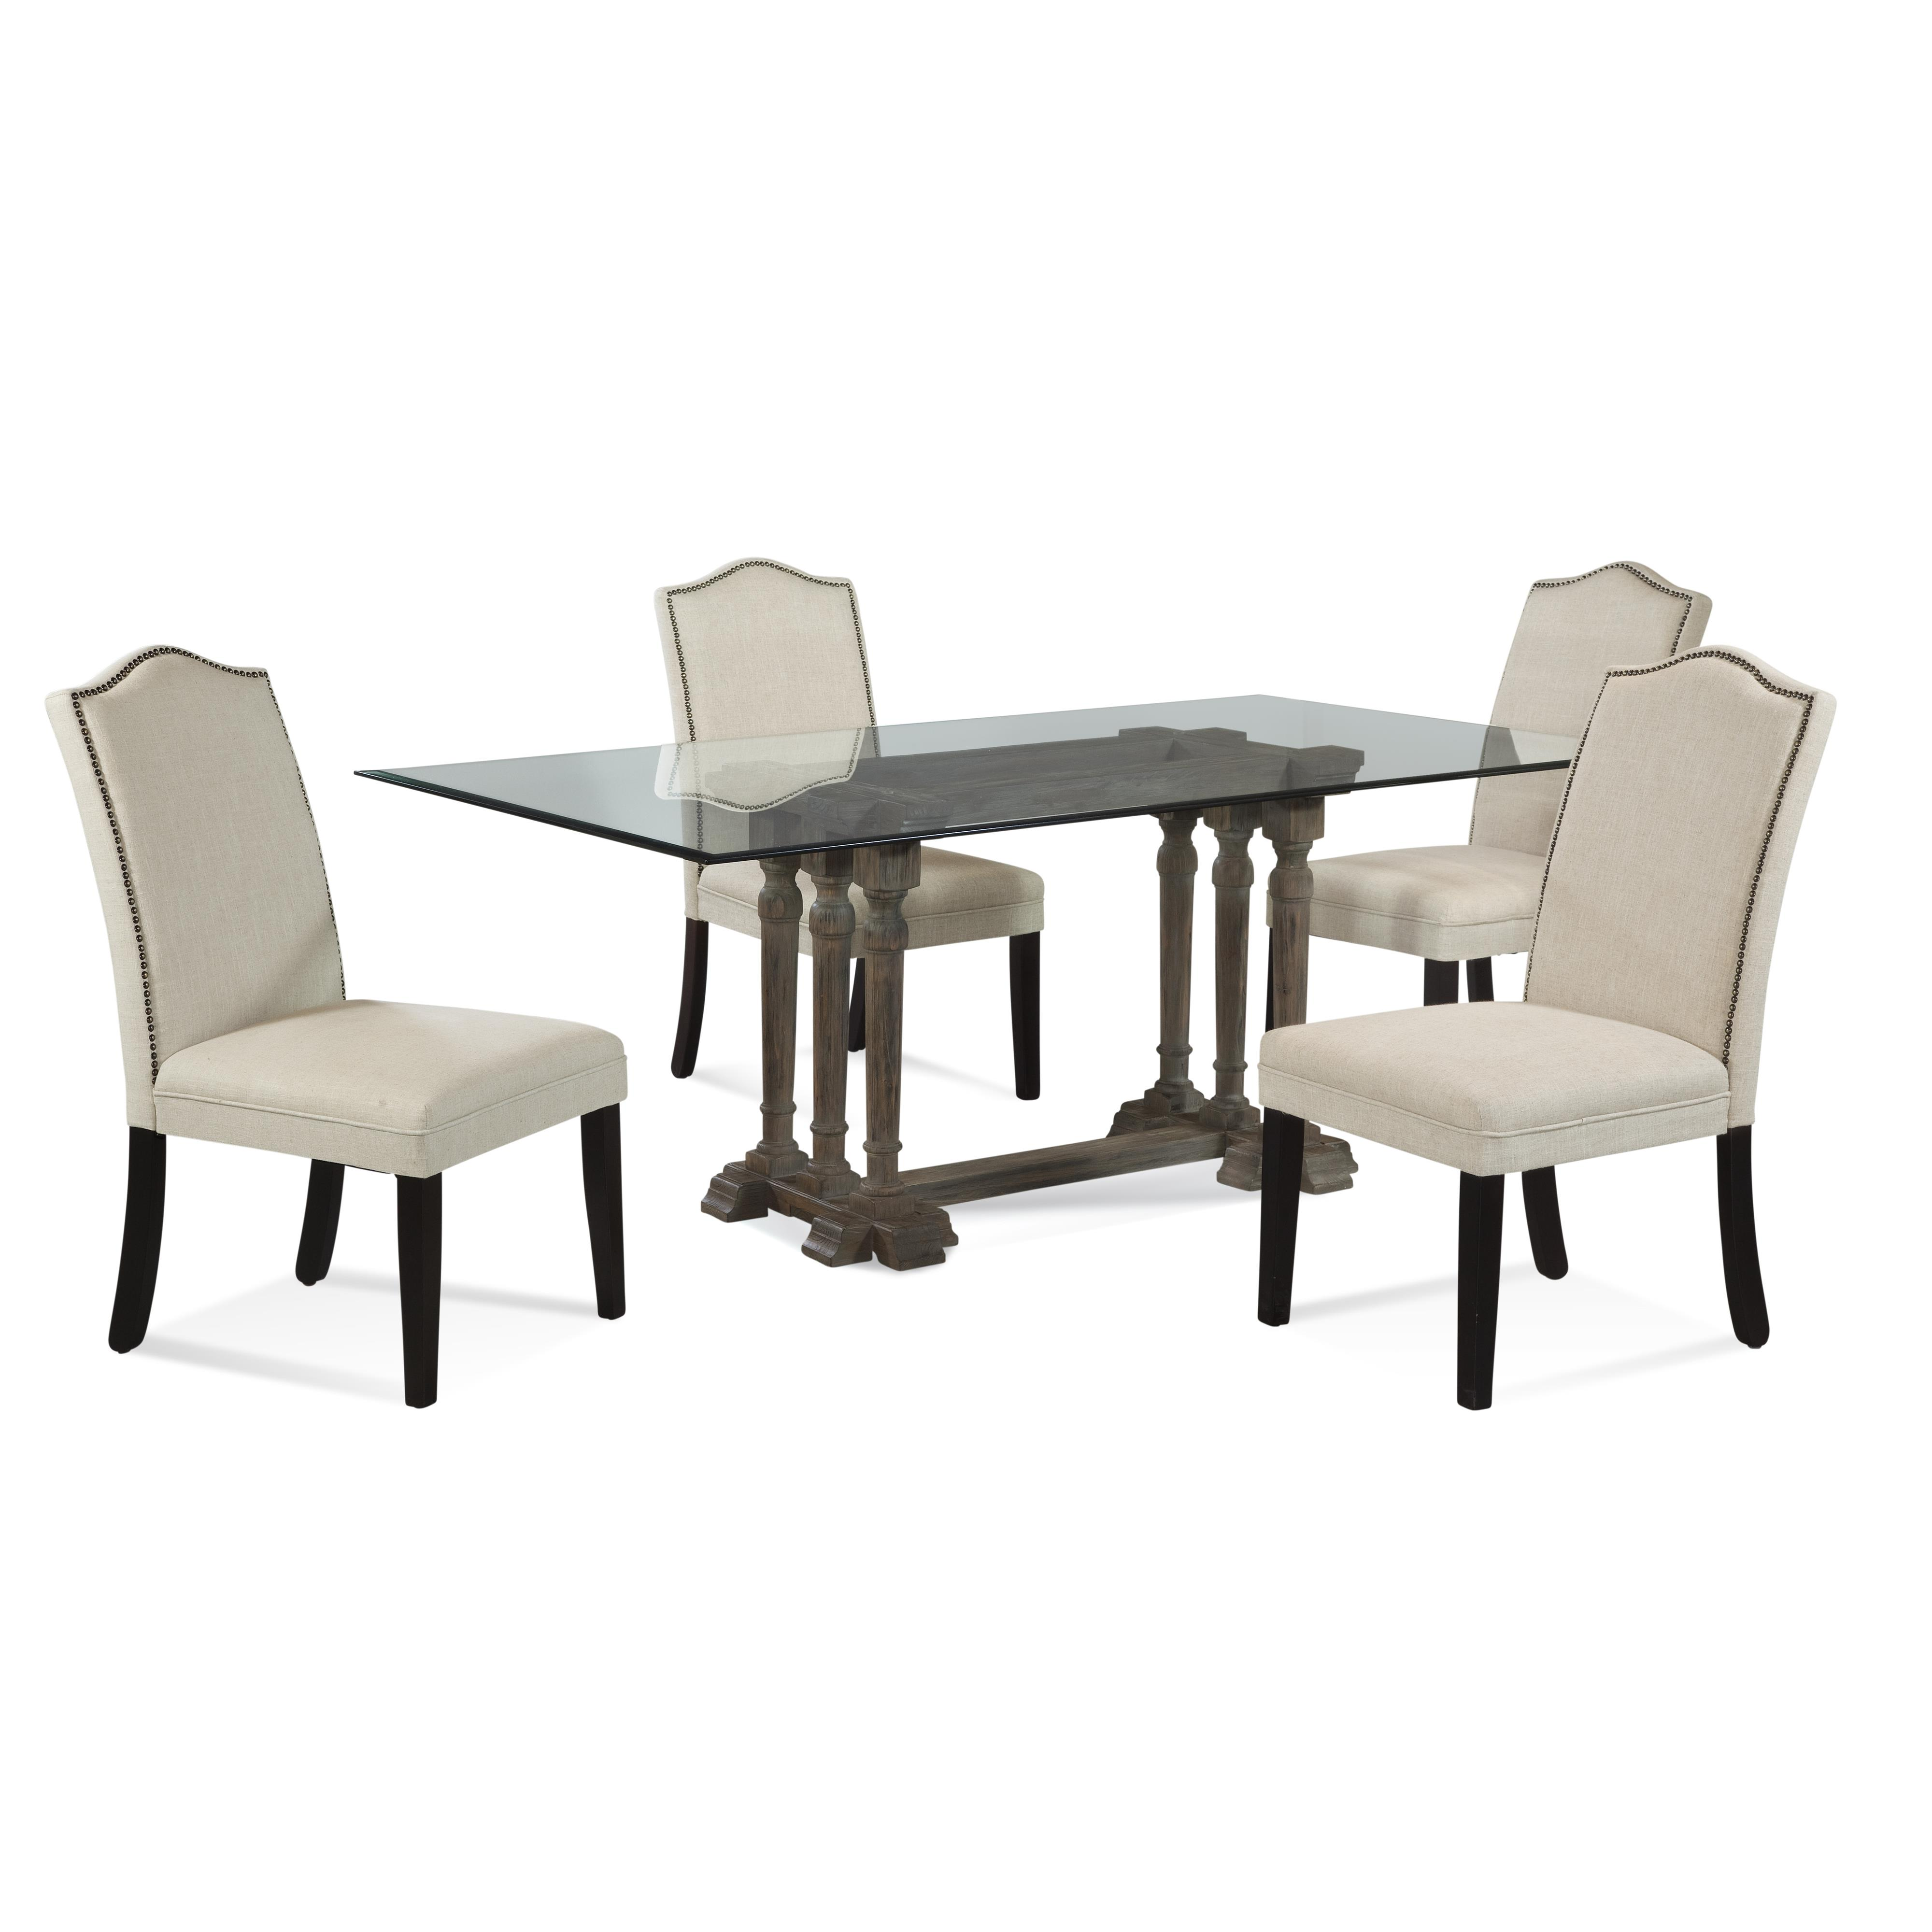 Belgian Luxe Pemberton Casual Dining Set by Bassett Mirror at Alison Craig Home Furnishings